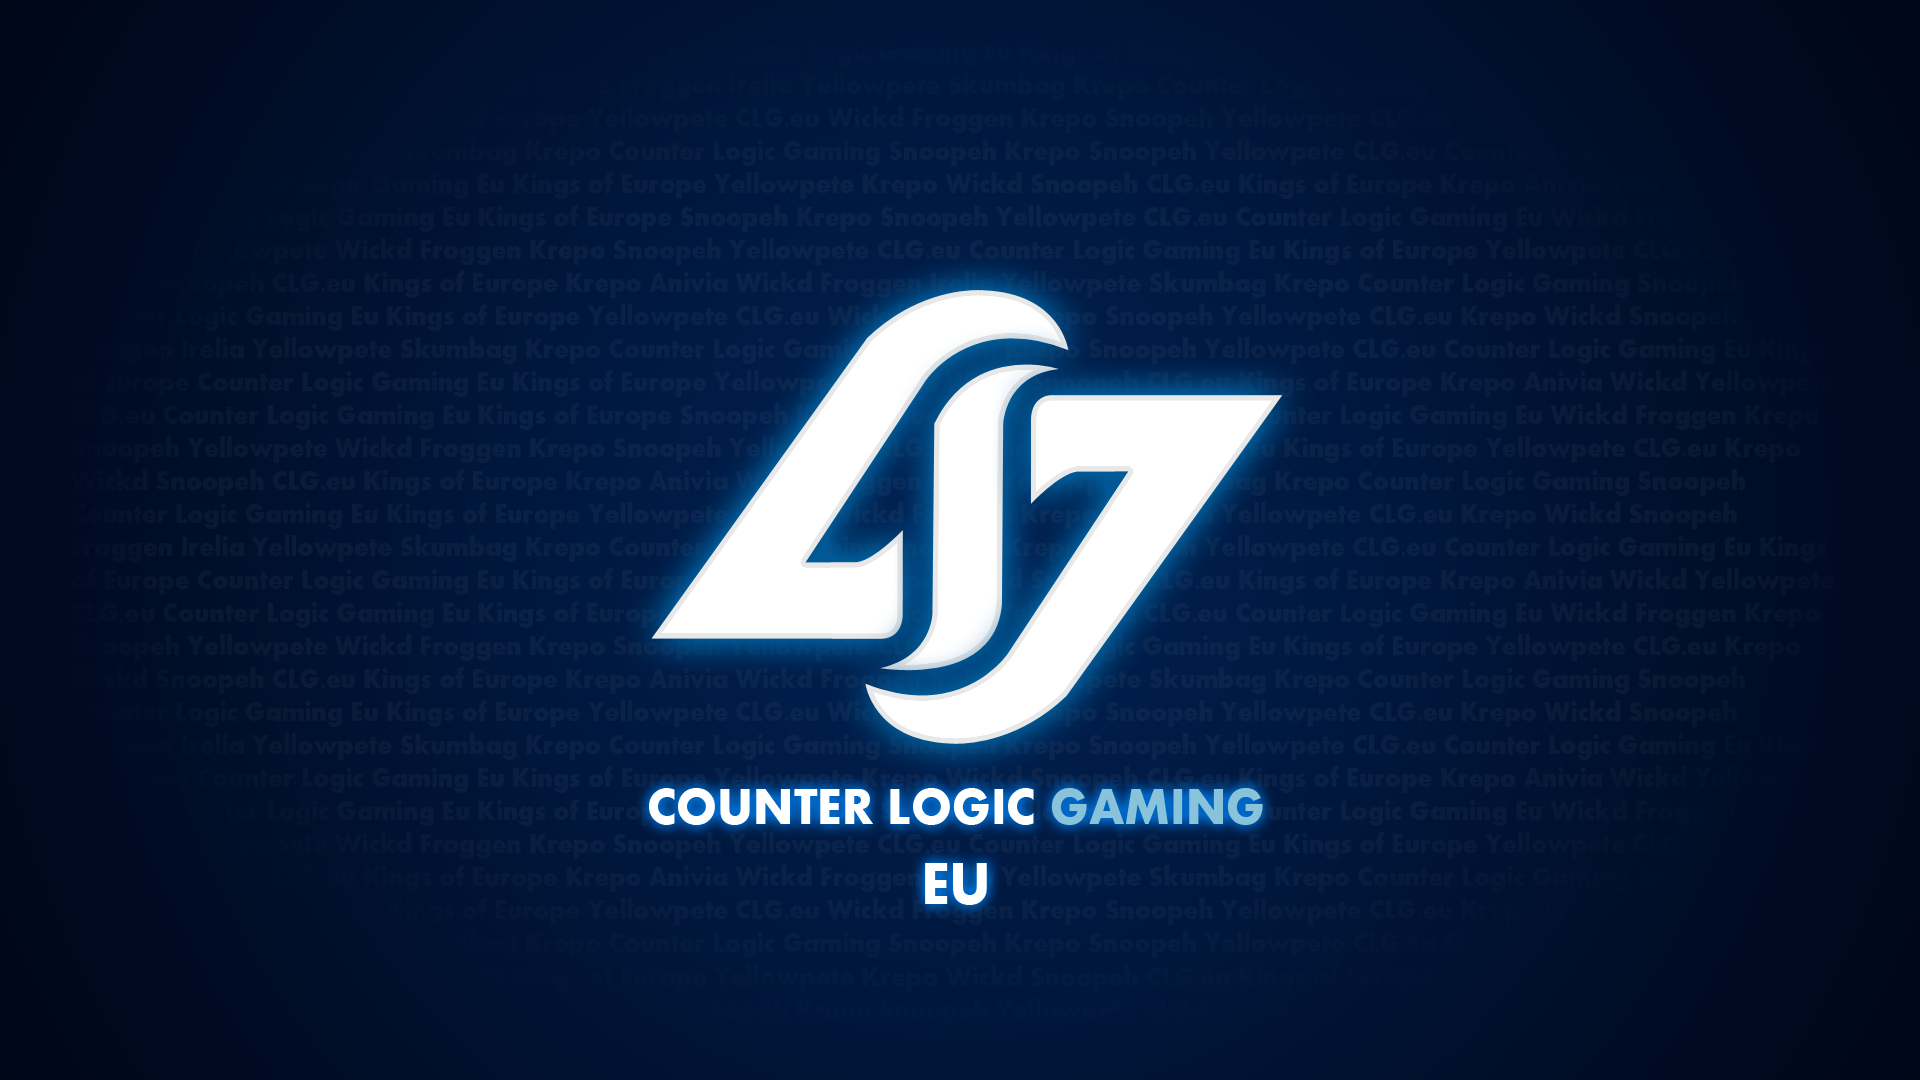 Counter Logic Gaming EU Wallpaper by ggeorgiev92